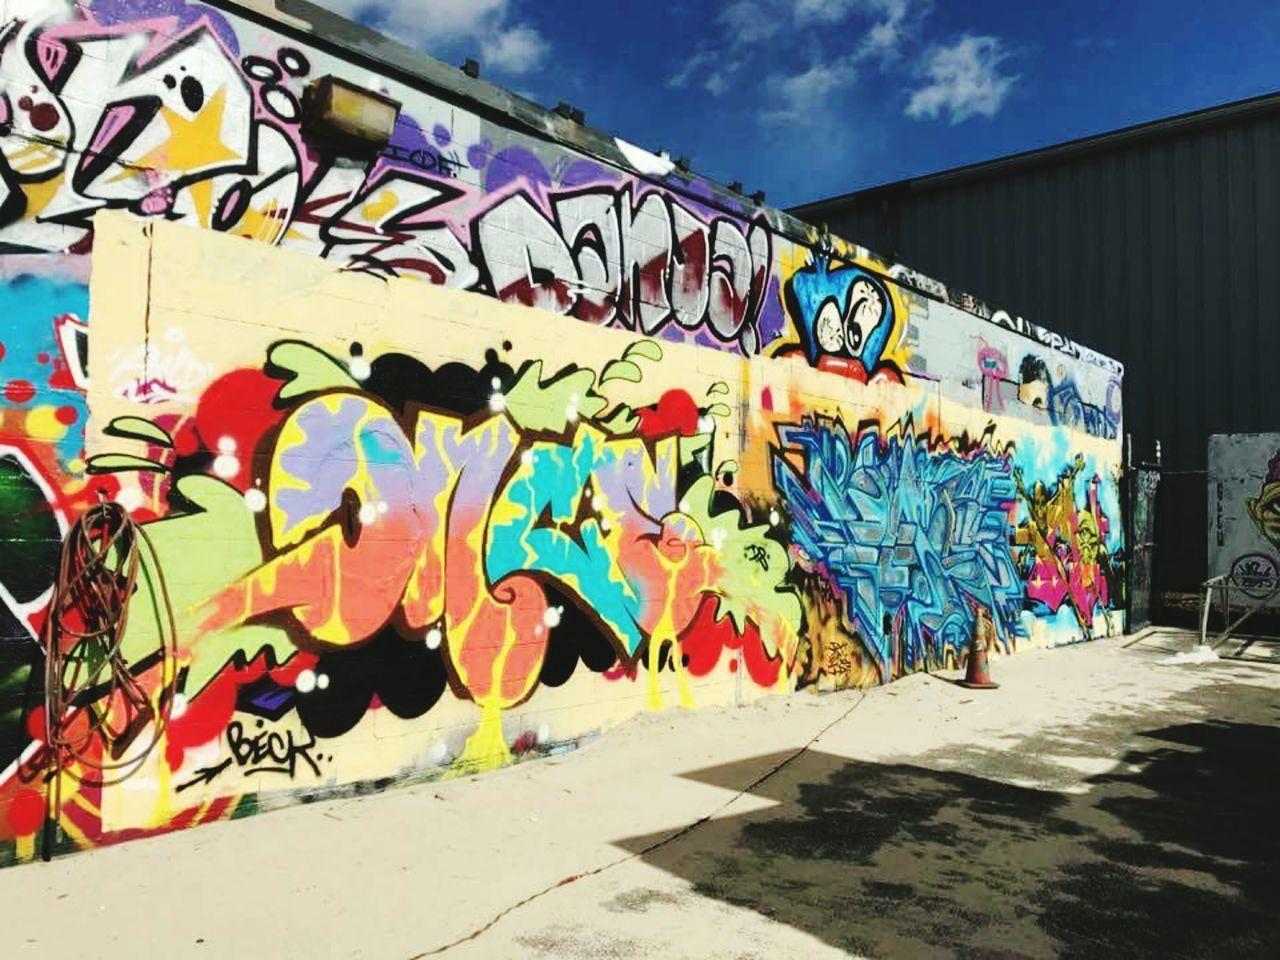 Graffiti Street Art Multi Colored Art And Craft Spray Paint Creativity Outdoors Day Lifestyles City Spraying Built Structure Artist People